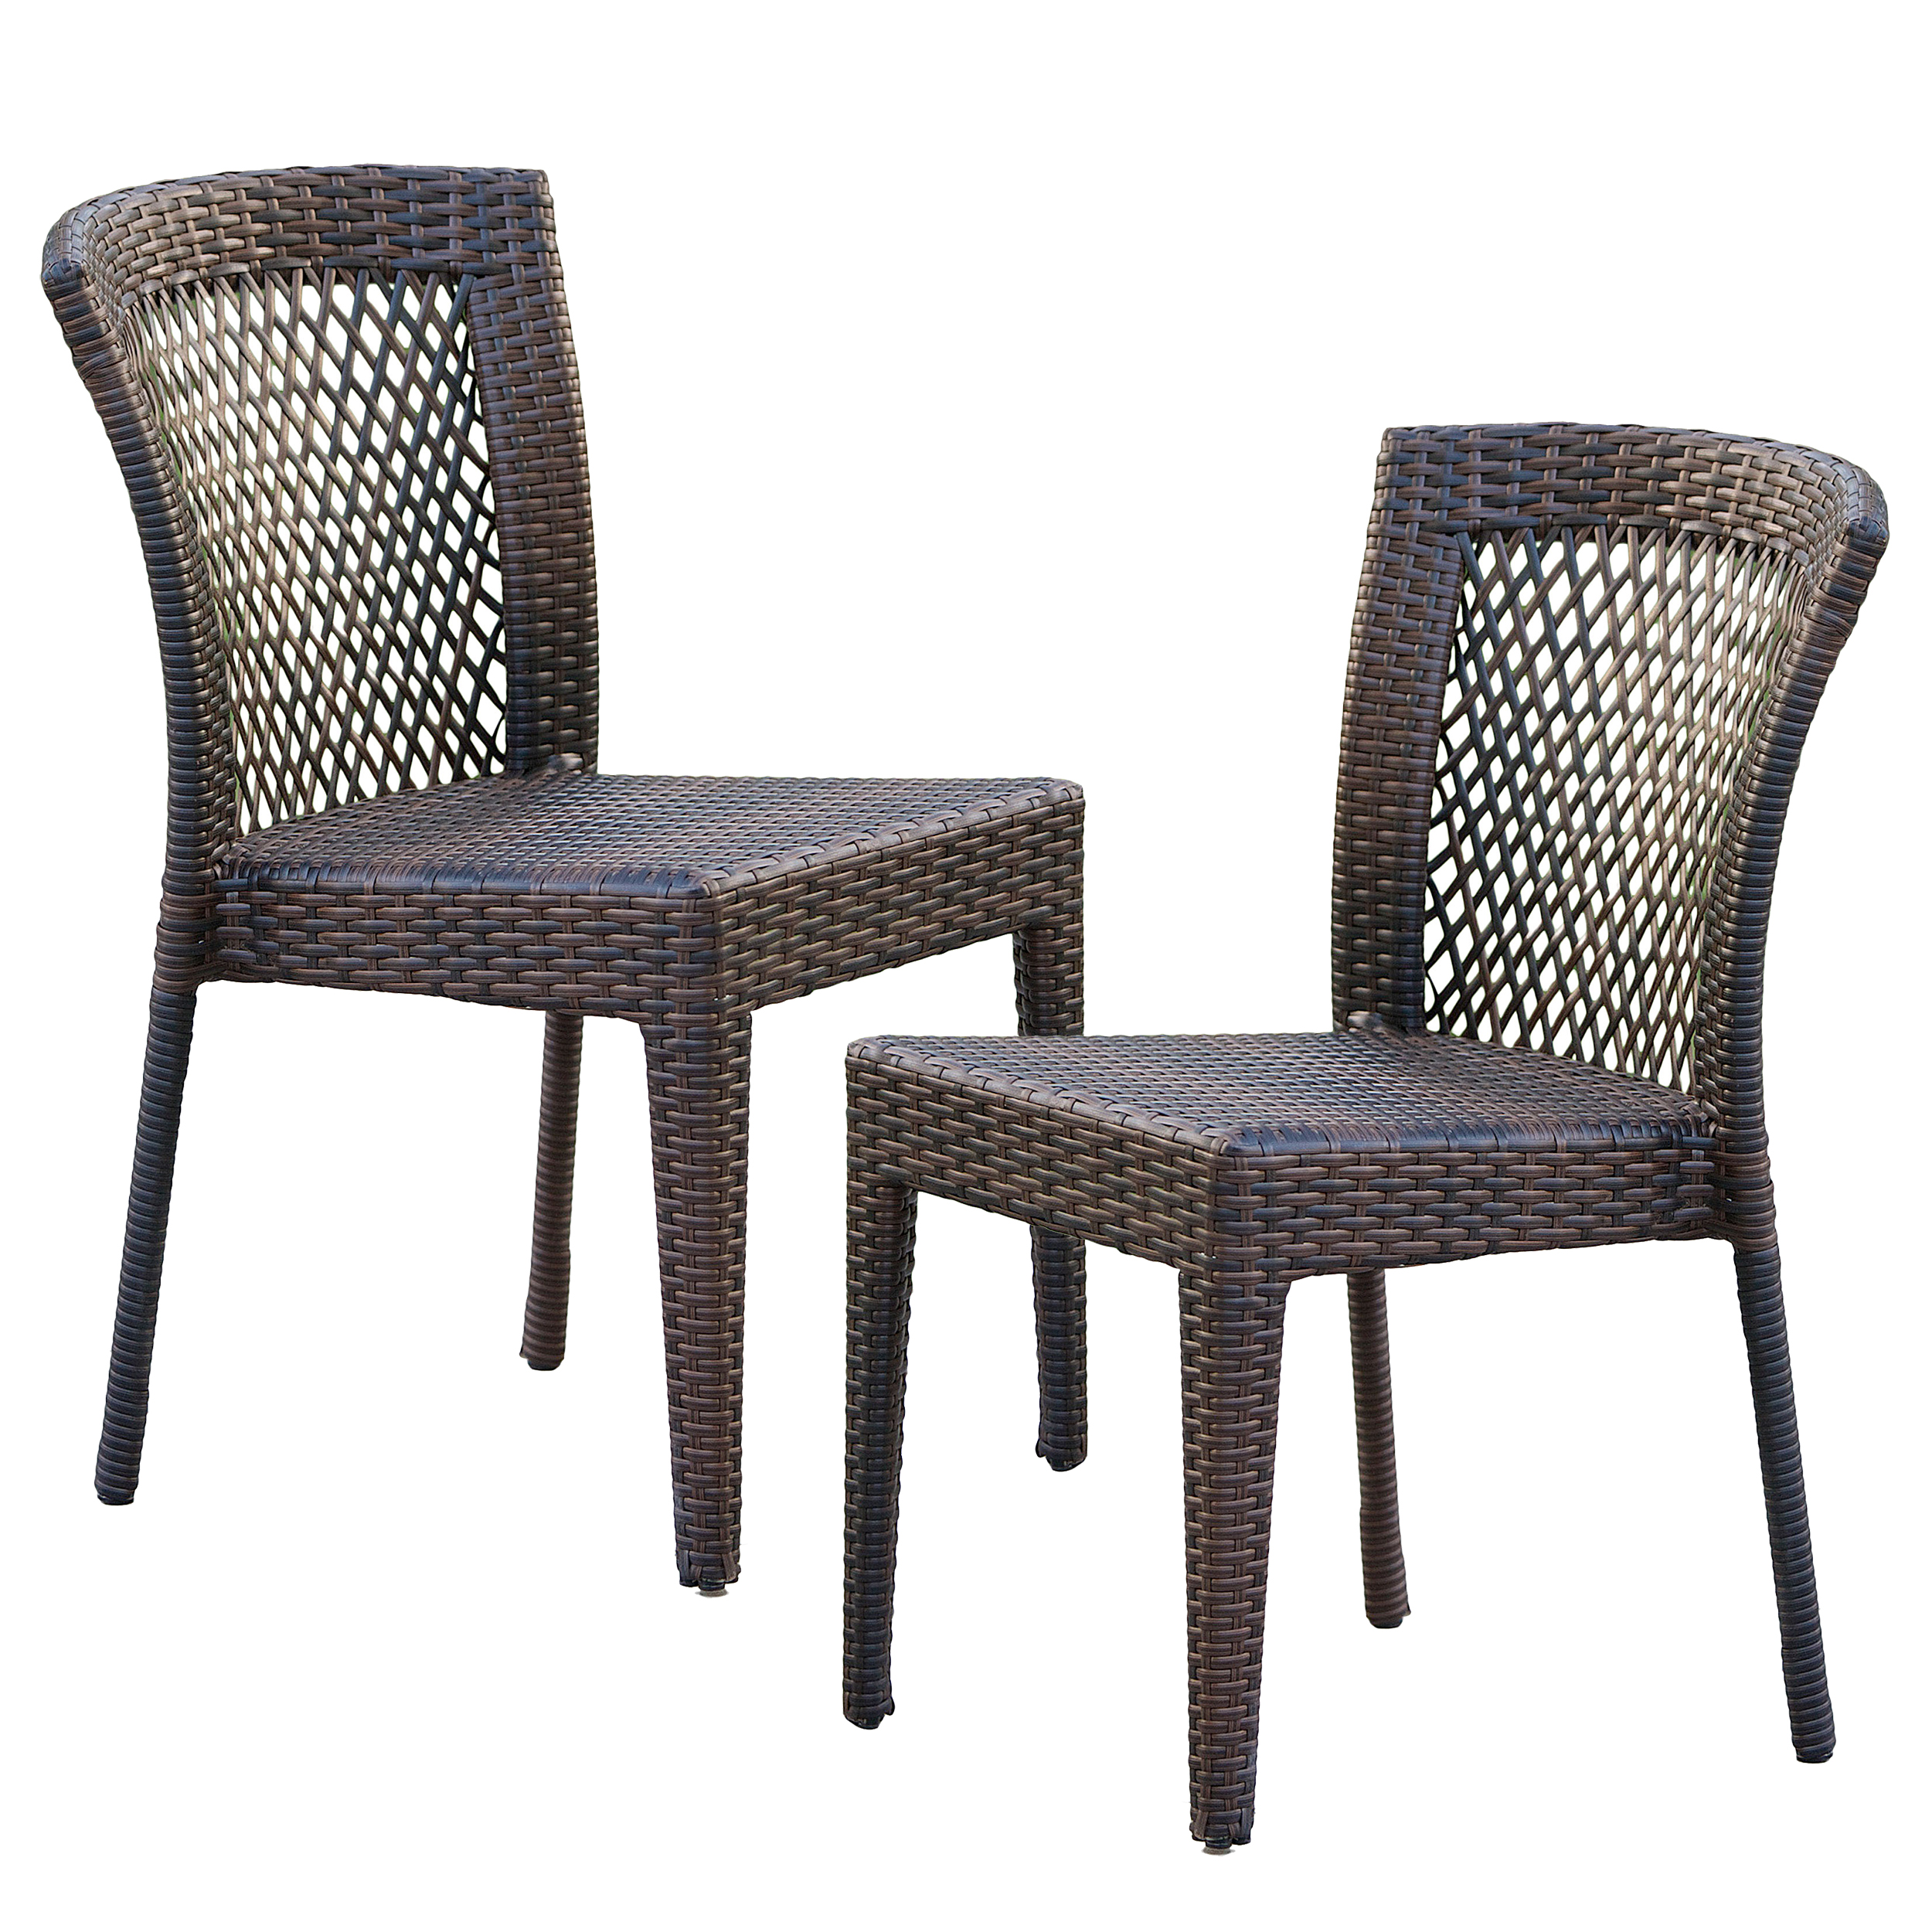 Dawn Outdoor Wicker Chairs (Set of 2) by GDF Studio